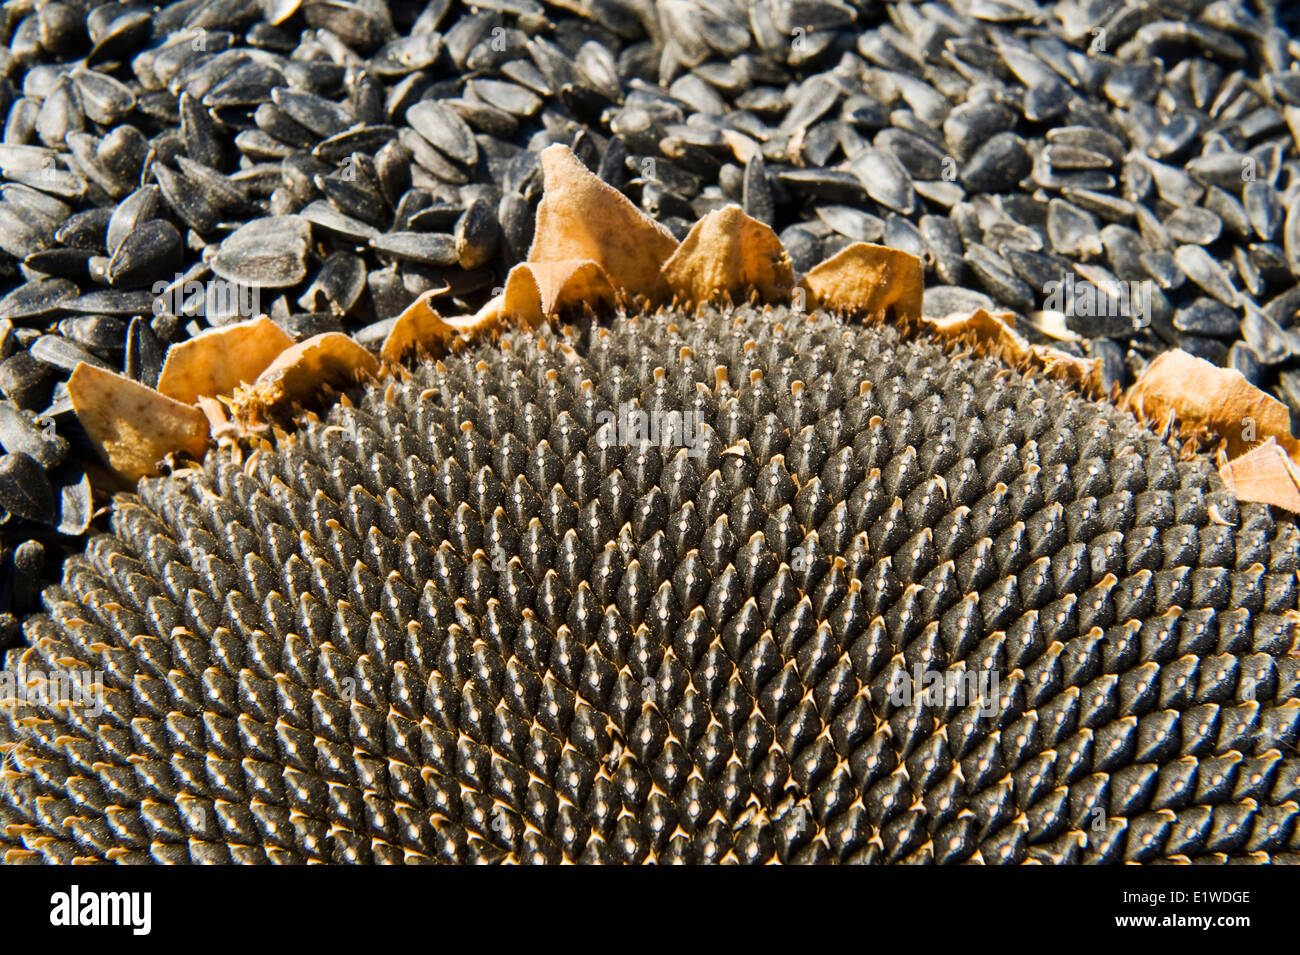 close-up of harvested black oil sunflower seeds and seed head ,near Lorette, Manitoba, Canada - Stock Image